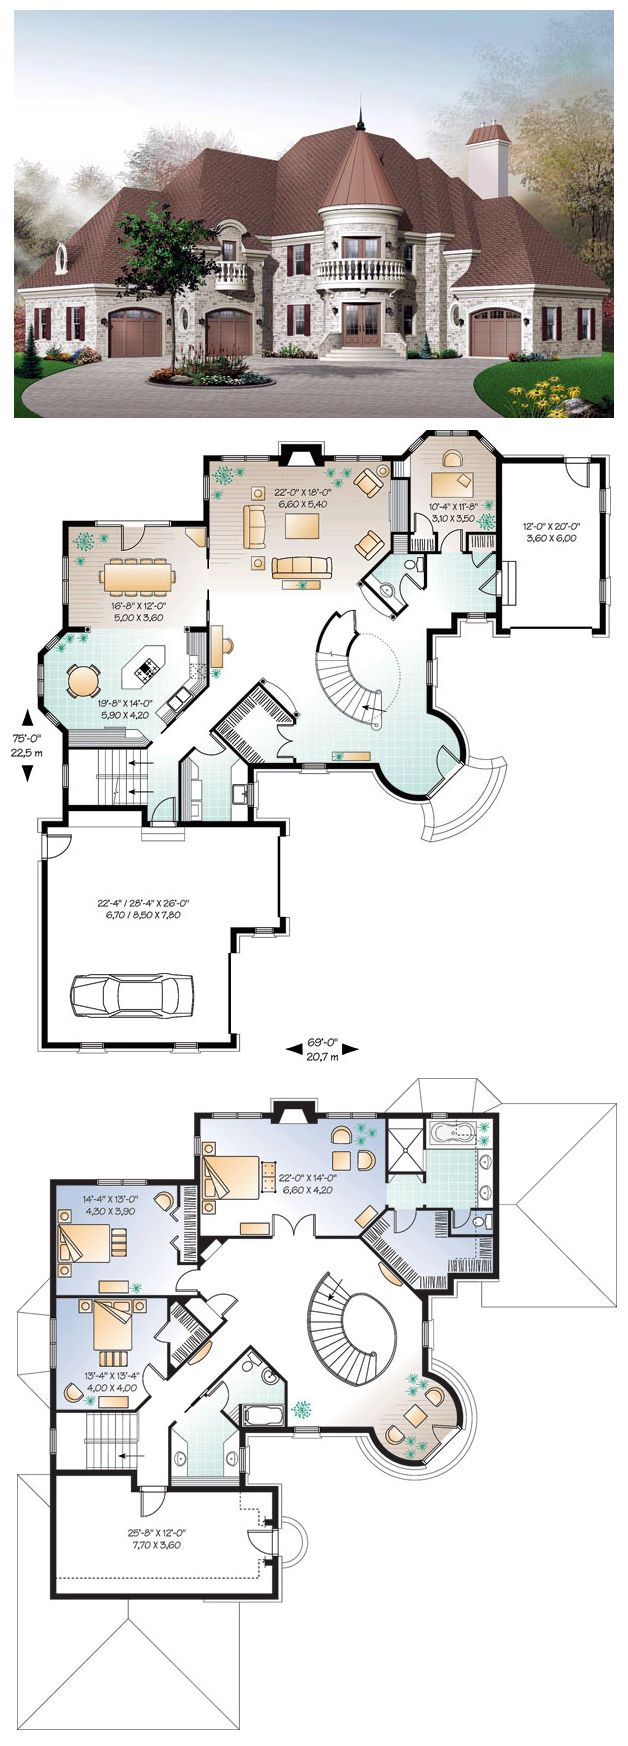 50 best Luxury House Plans images on Pinterest